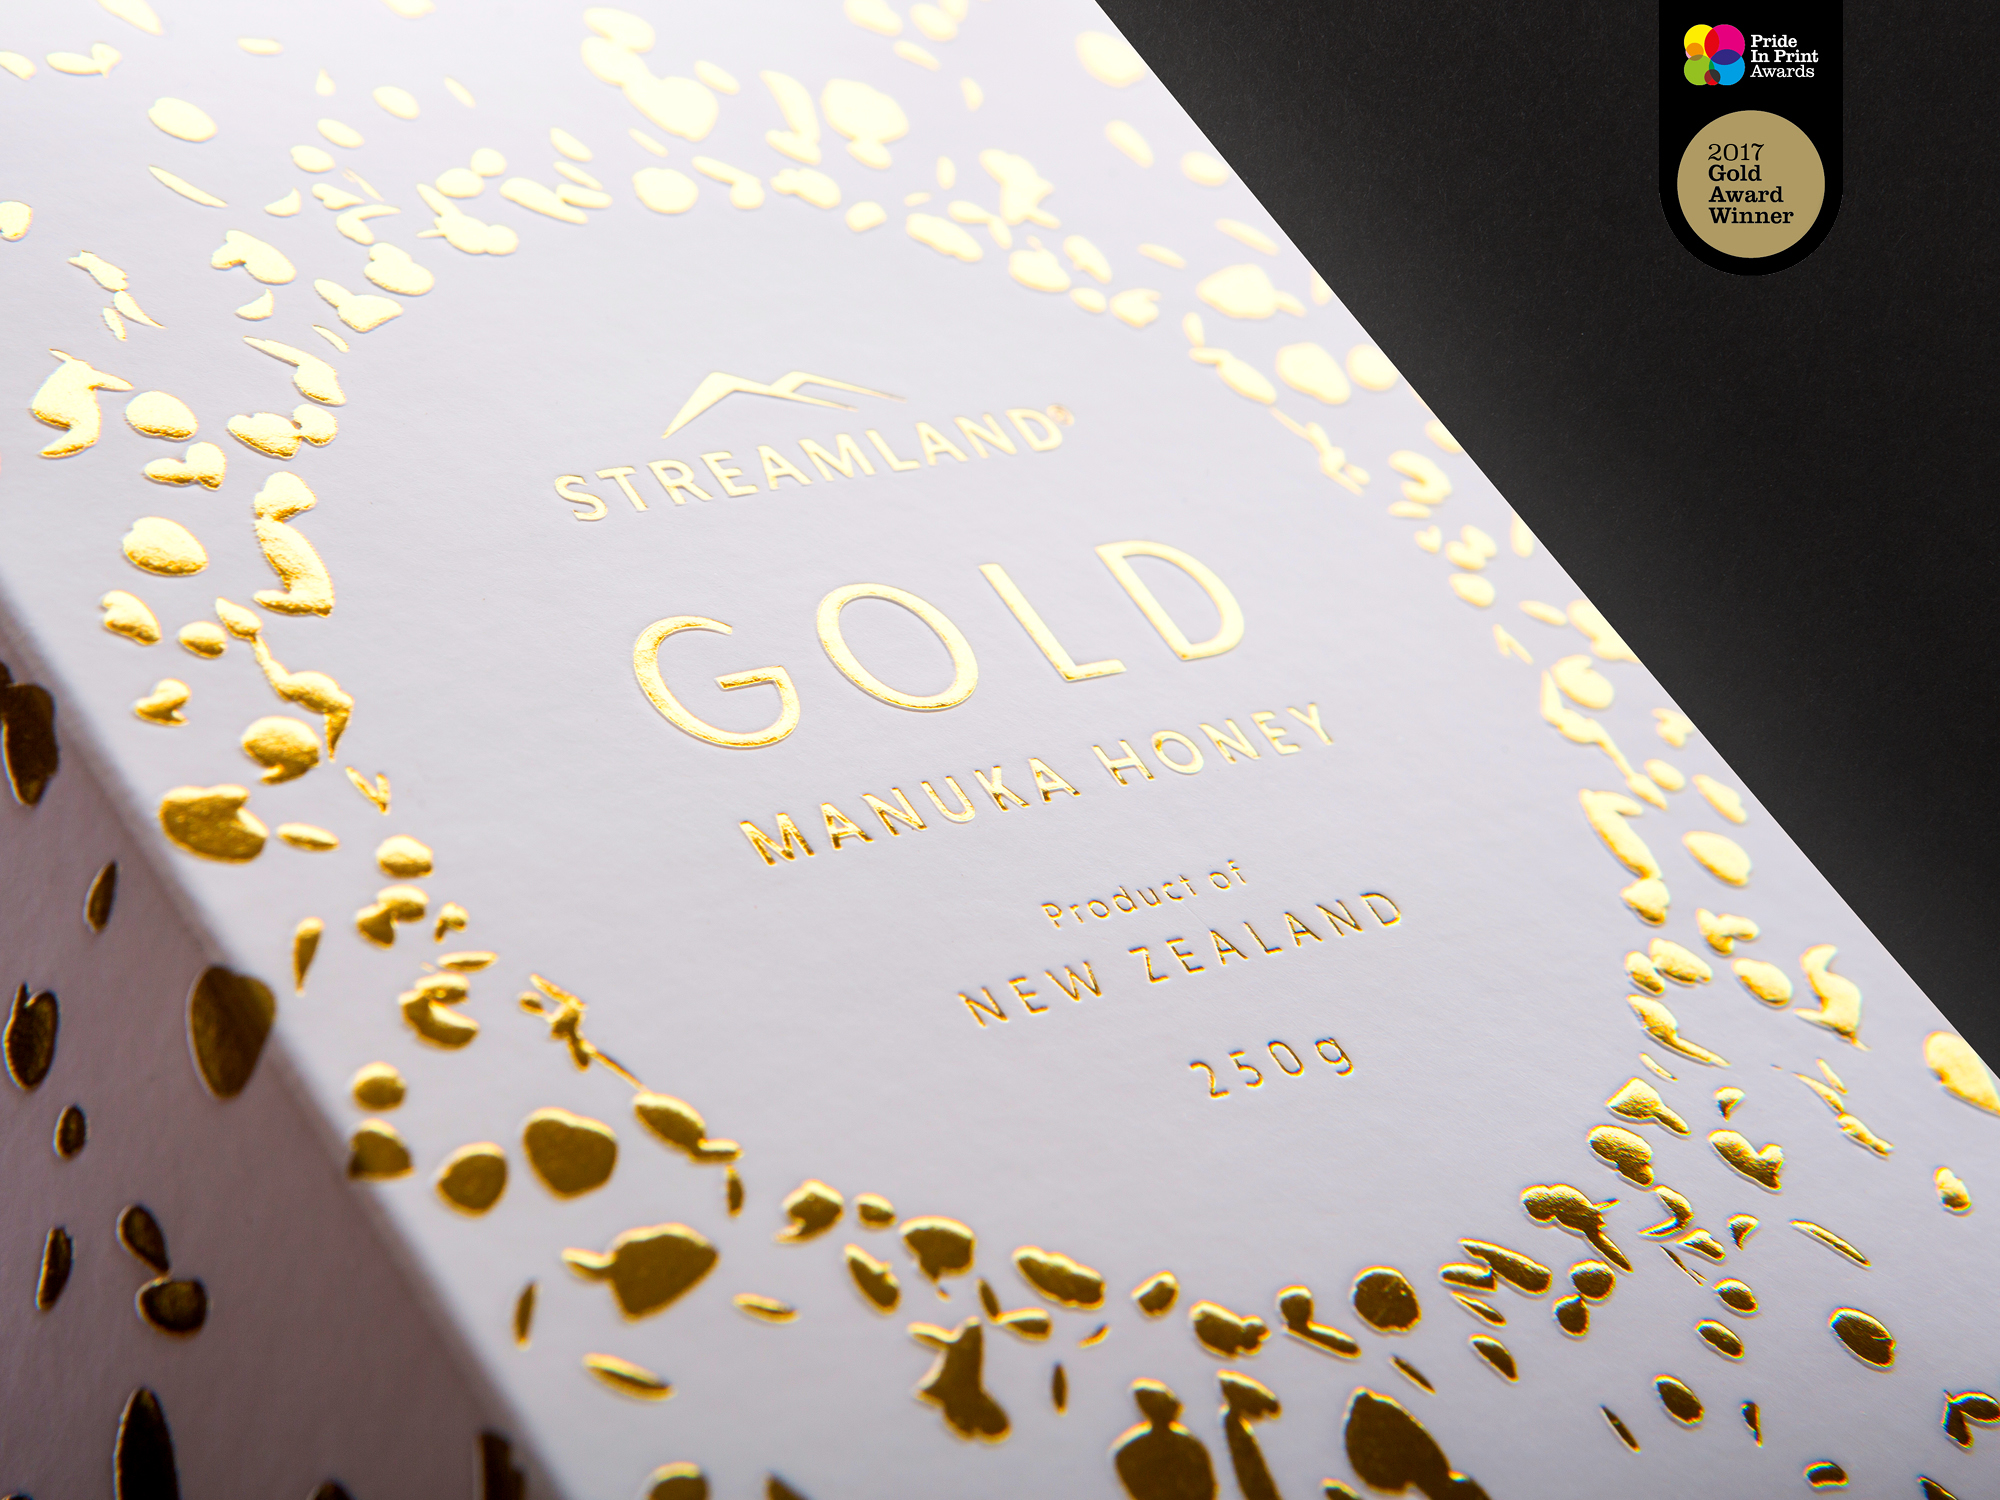 onfire design streamland gold honey packaging design pride in print gold winner 2